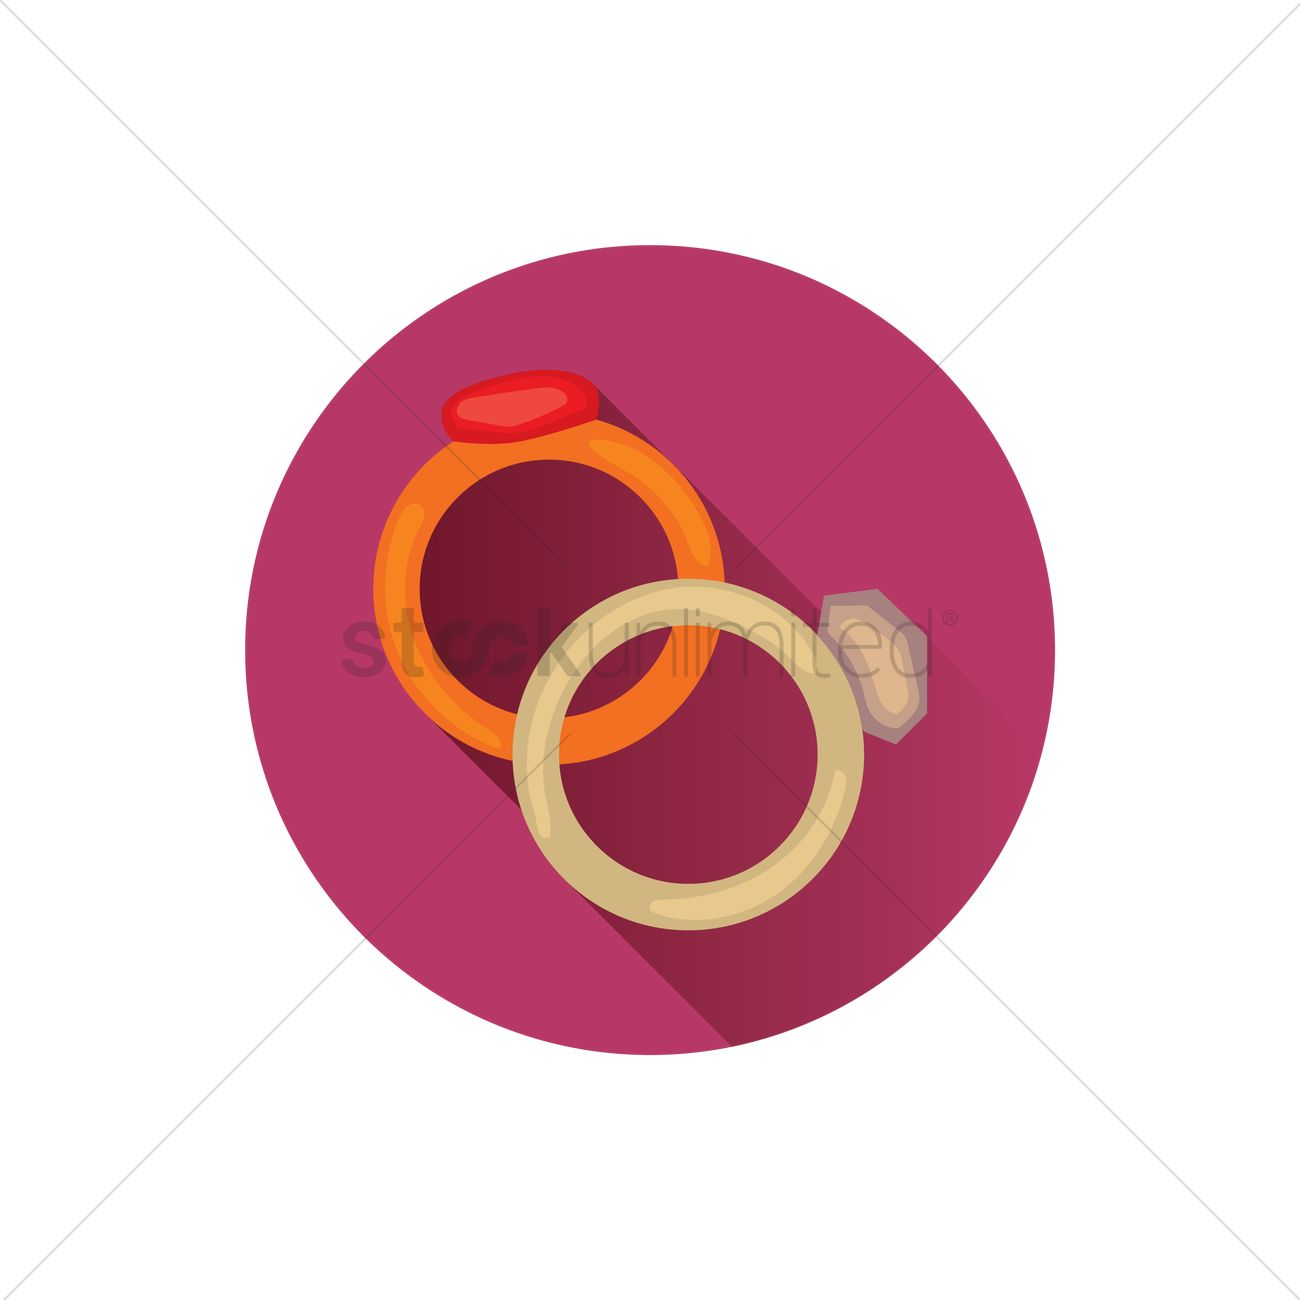 Free Wedding rings Vector Image - 1240665 | StockUnlimited